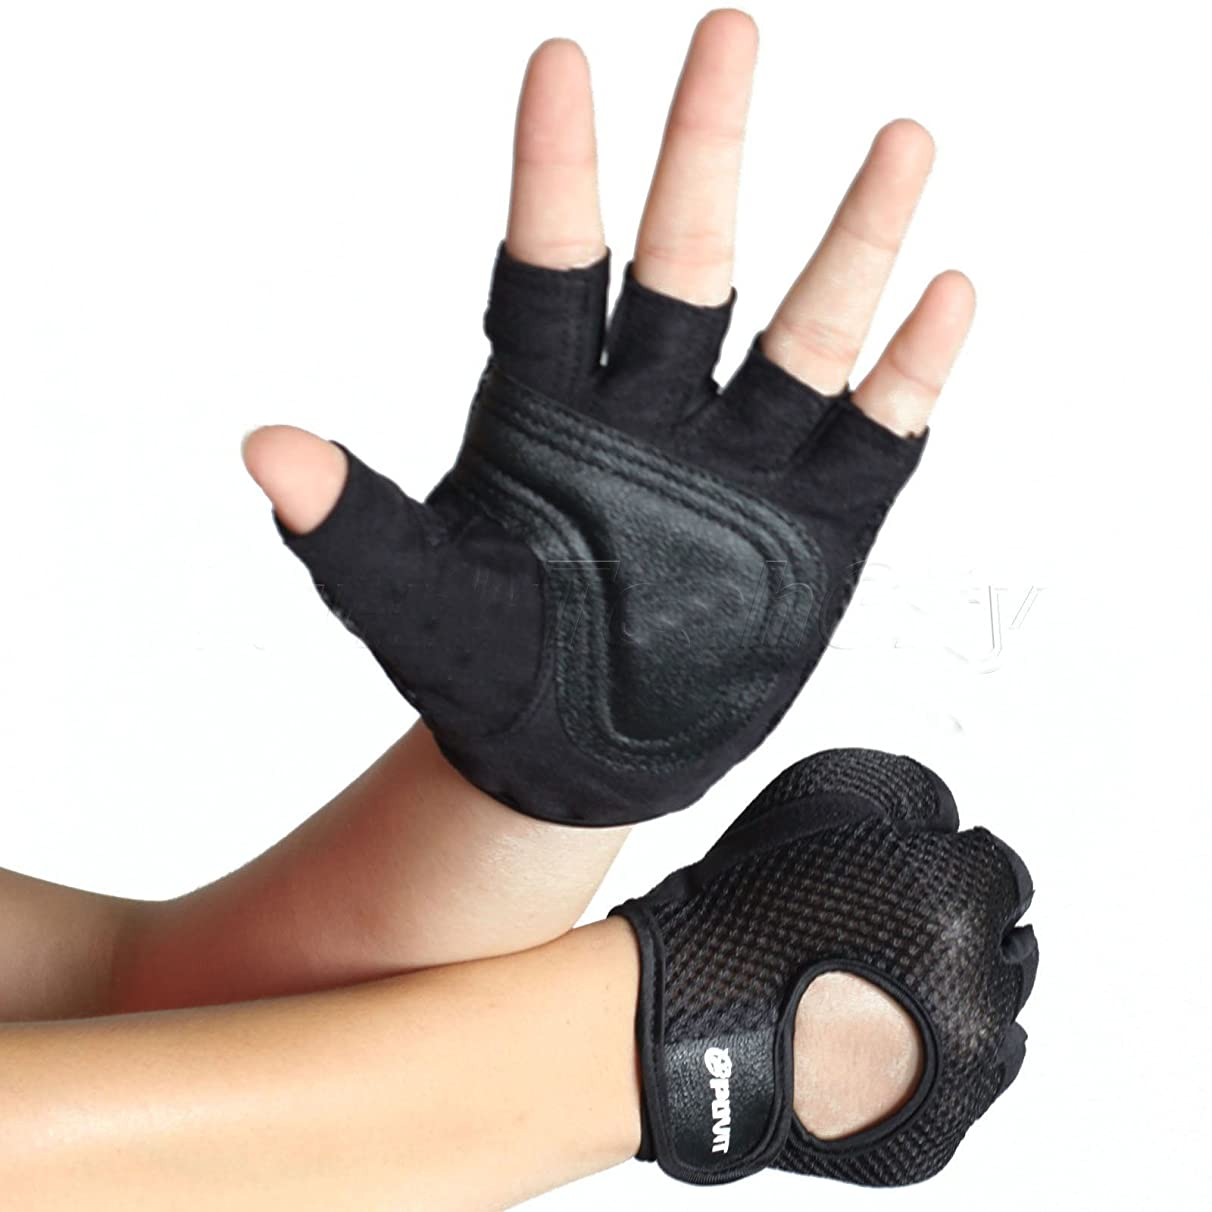 Weight gloves Gym Body Building Training Fitness Gloves Sports Weight Lifting Workout Exercise weight lifting gym gloves